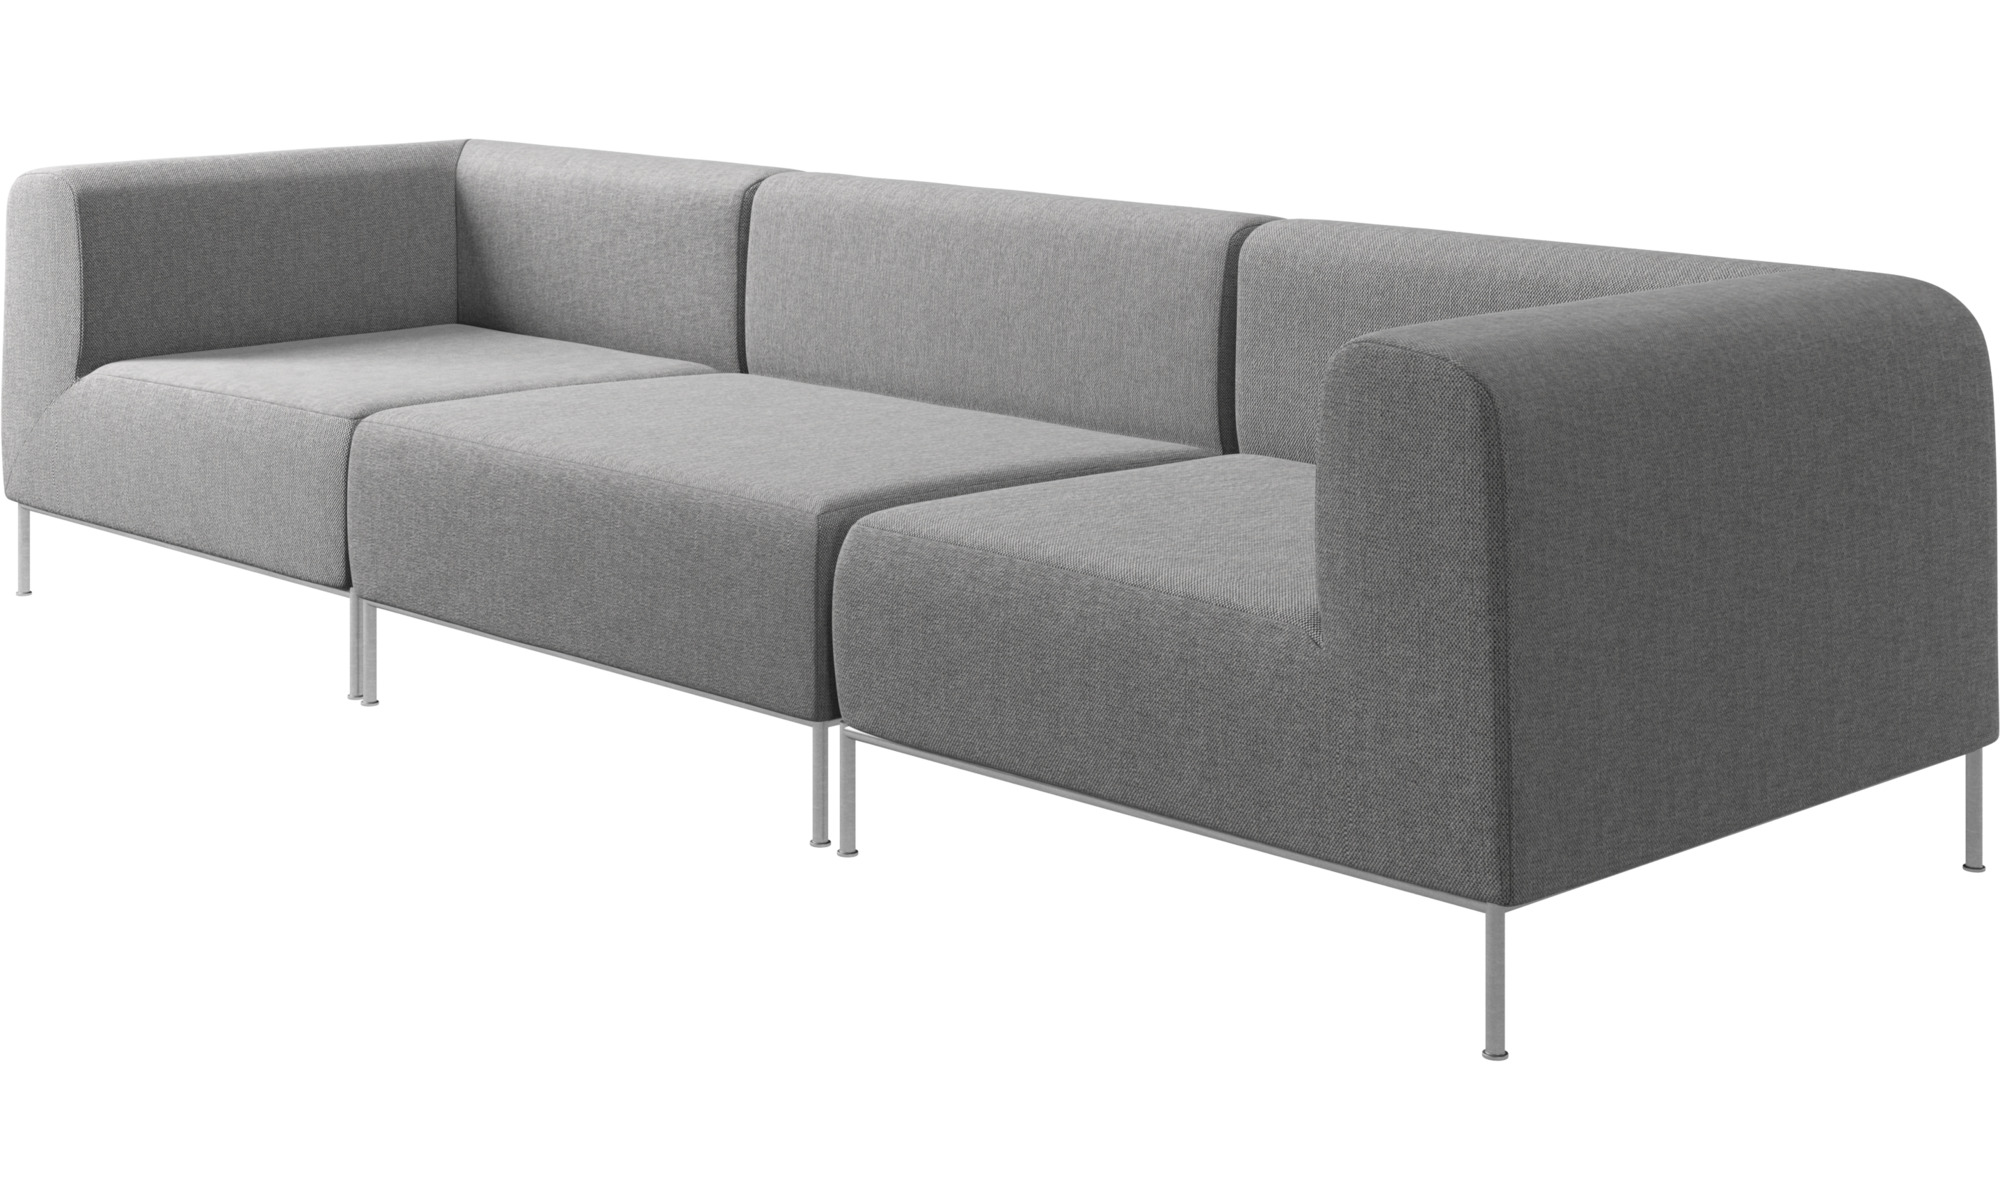 Modular Sofas Miami Sofa Grey Fabric